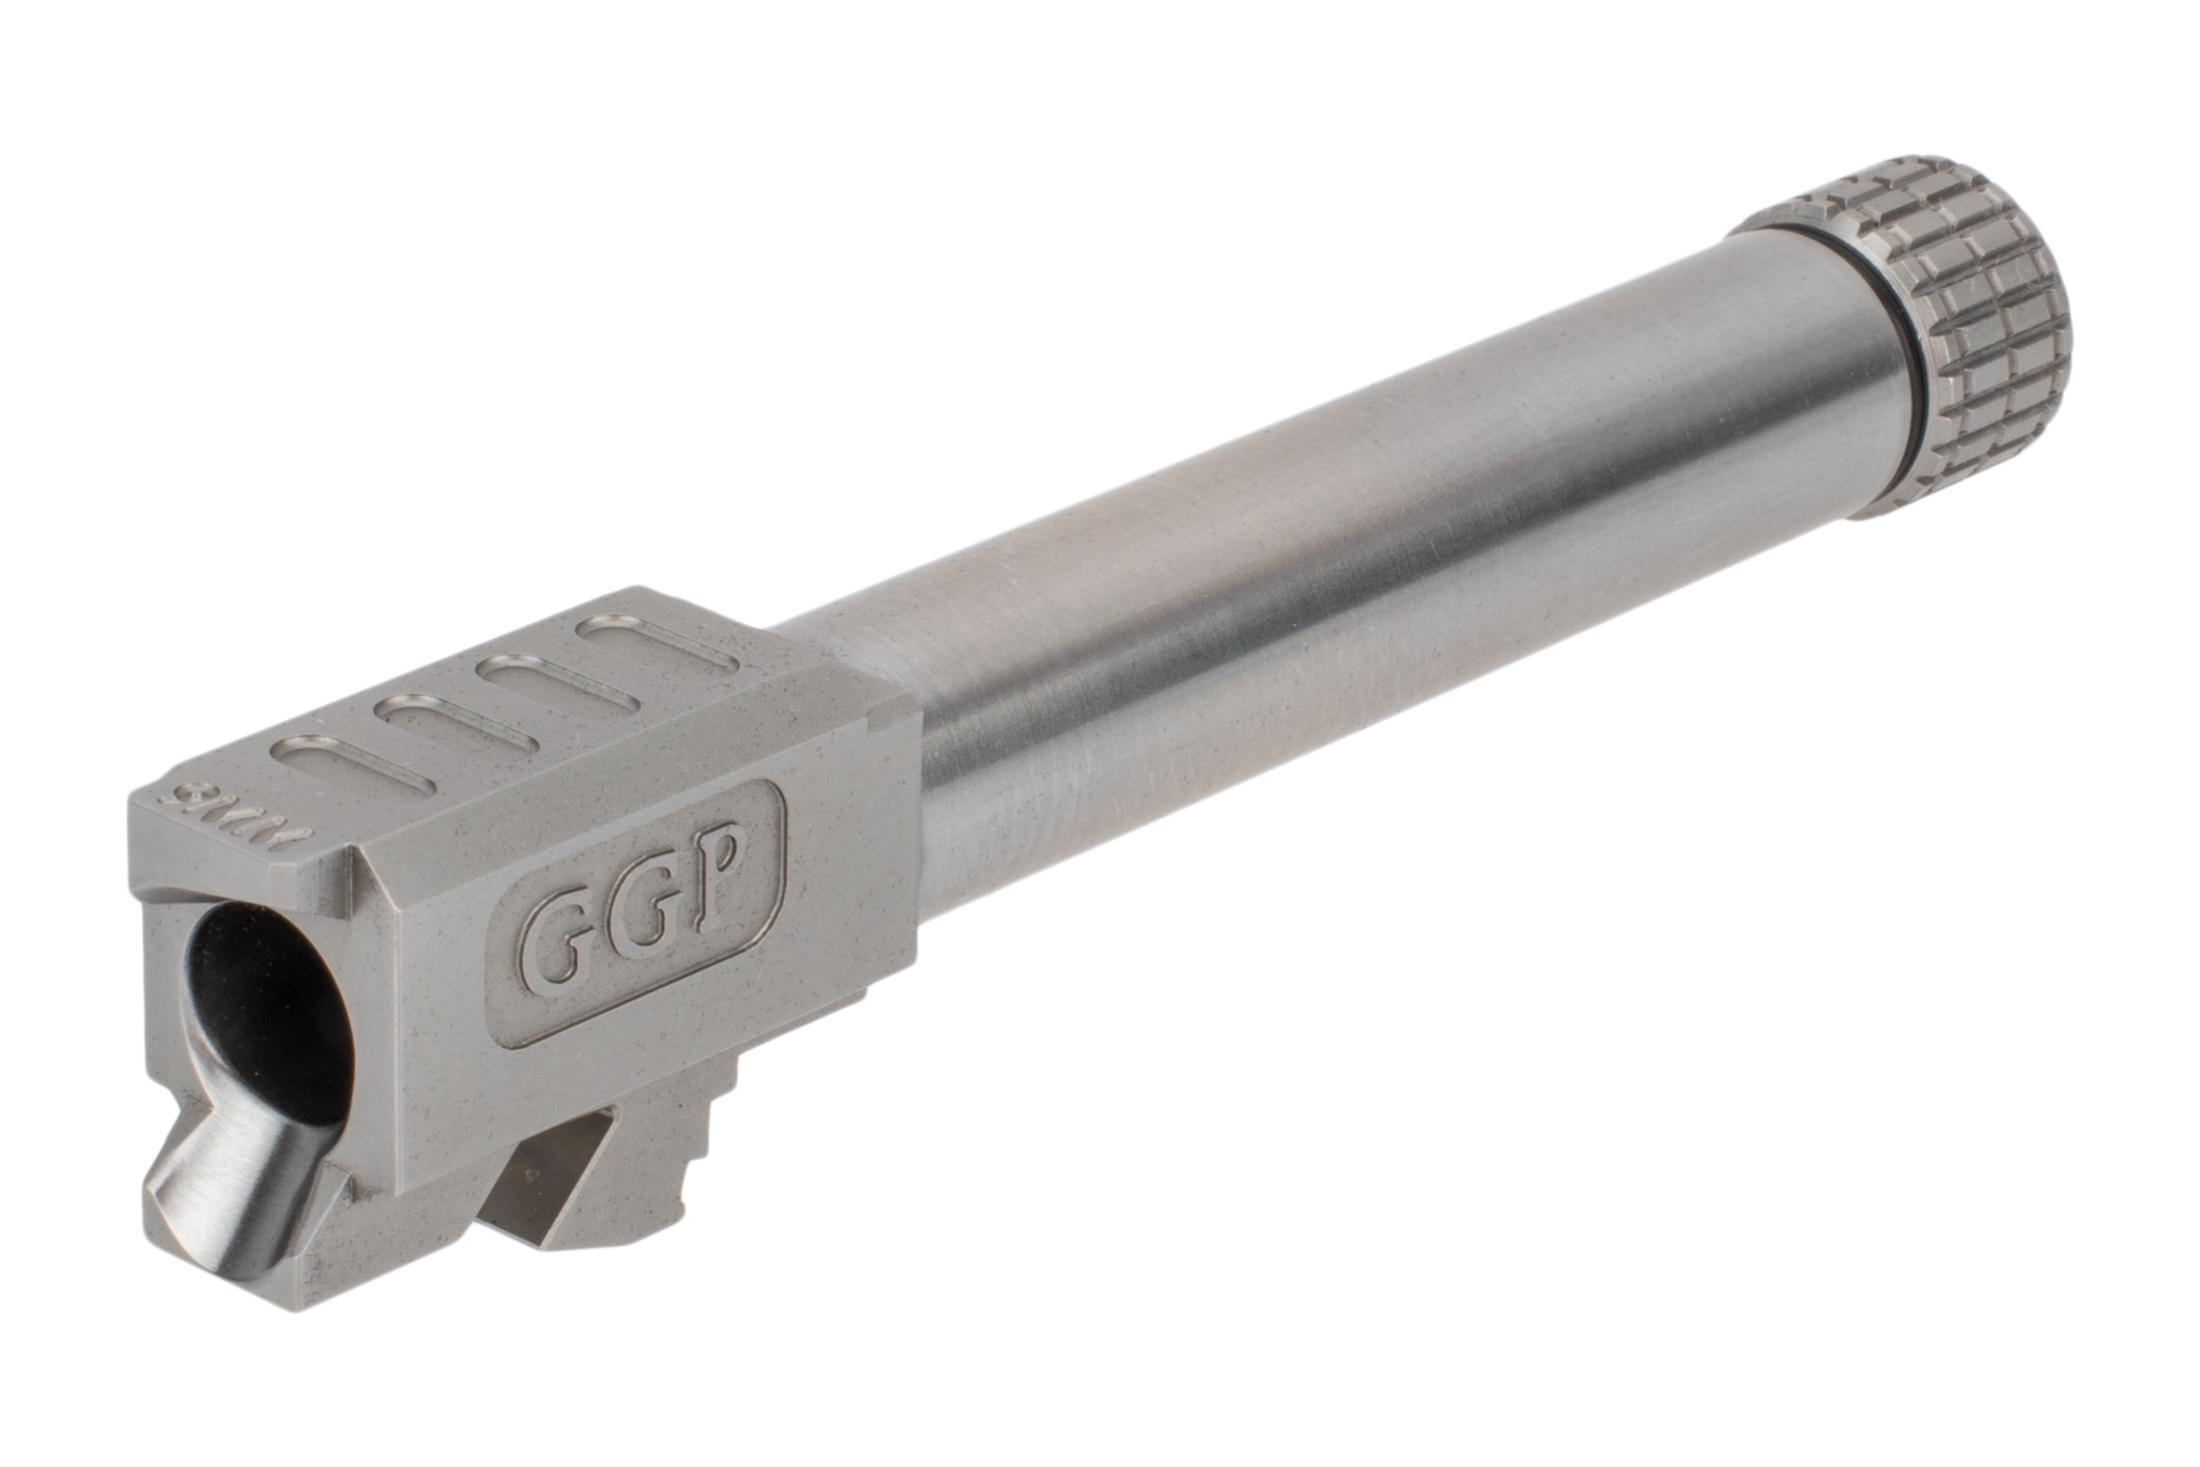 GGP threaded Glock G19 barrel features a match-grade SAAMI-spec 9mm chamber and tough finish